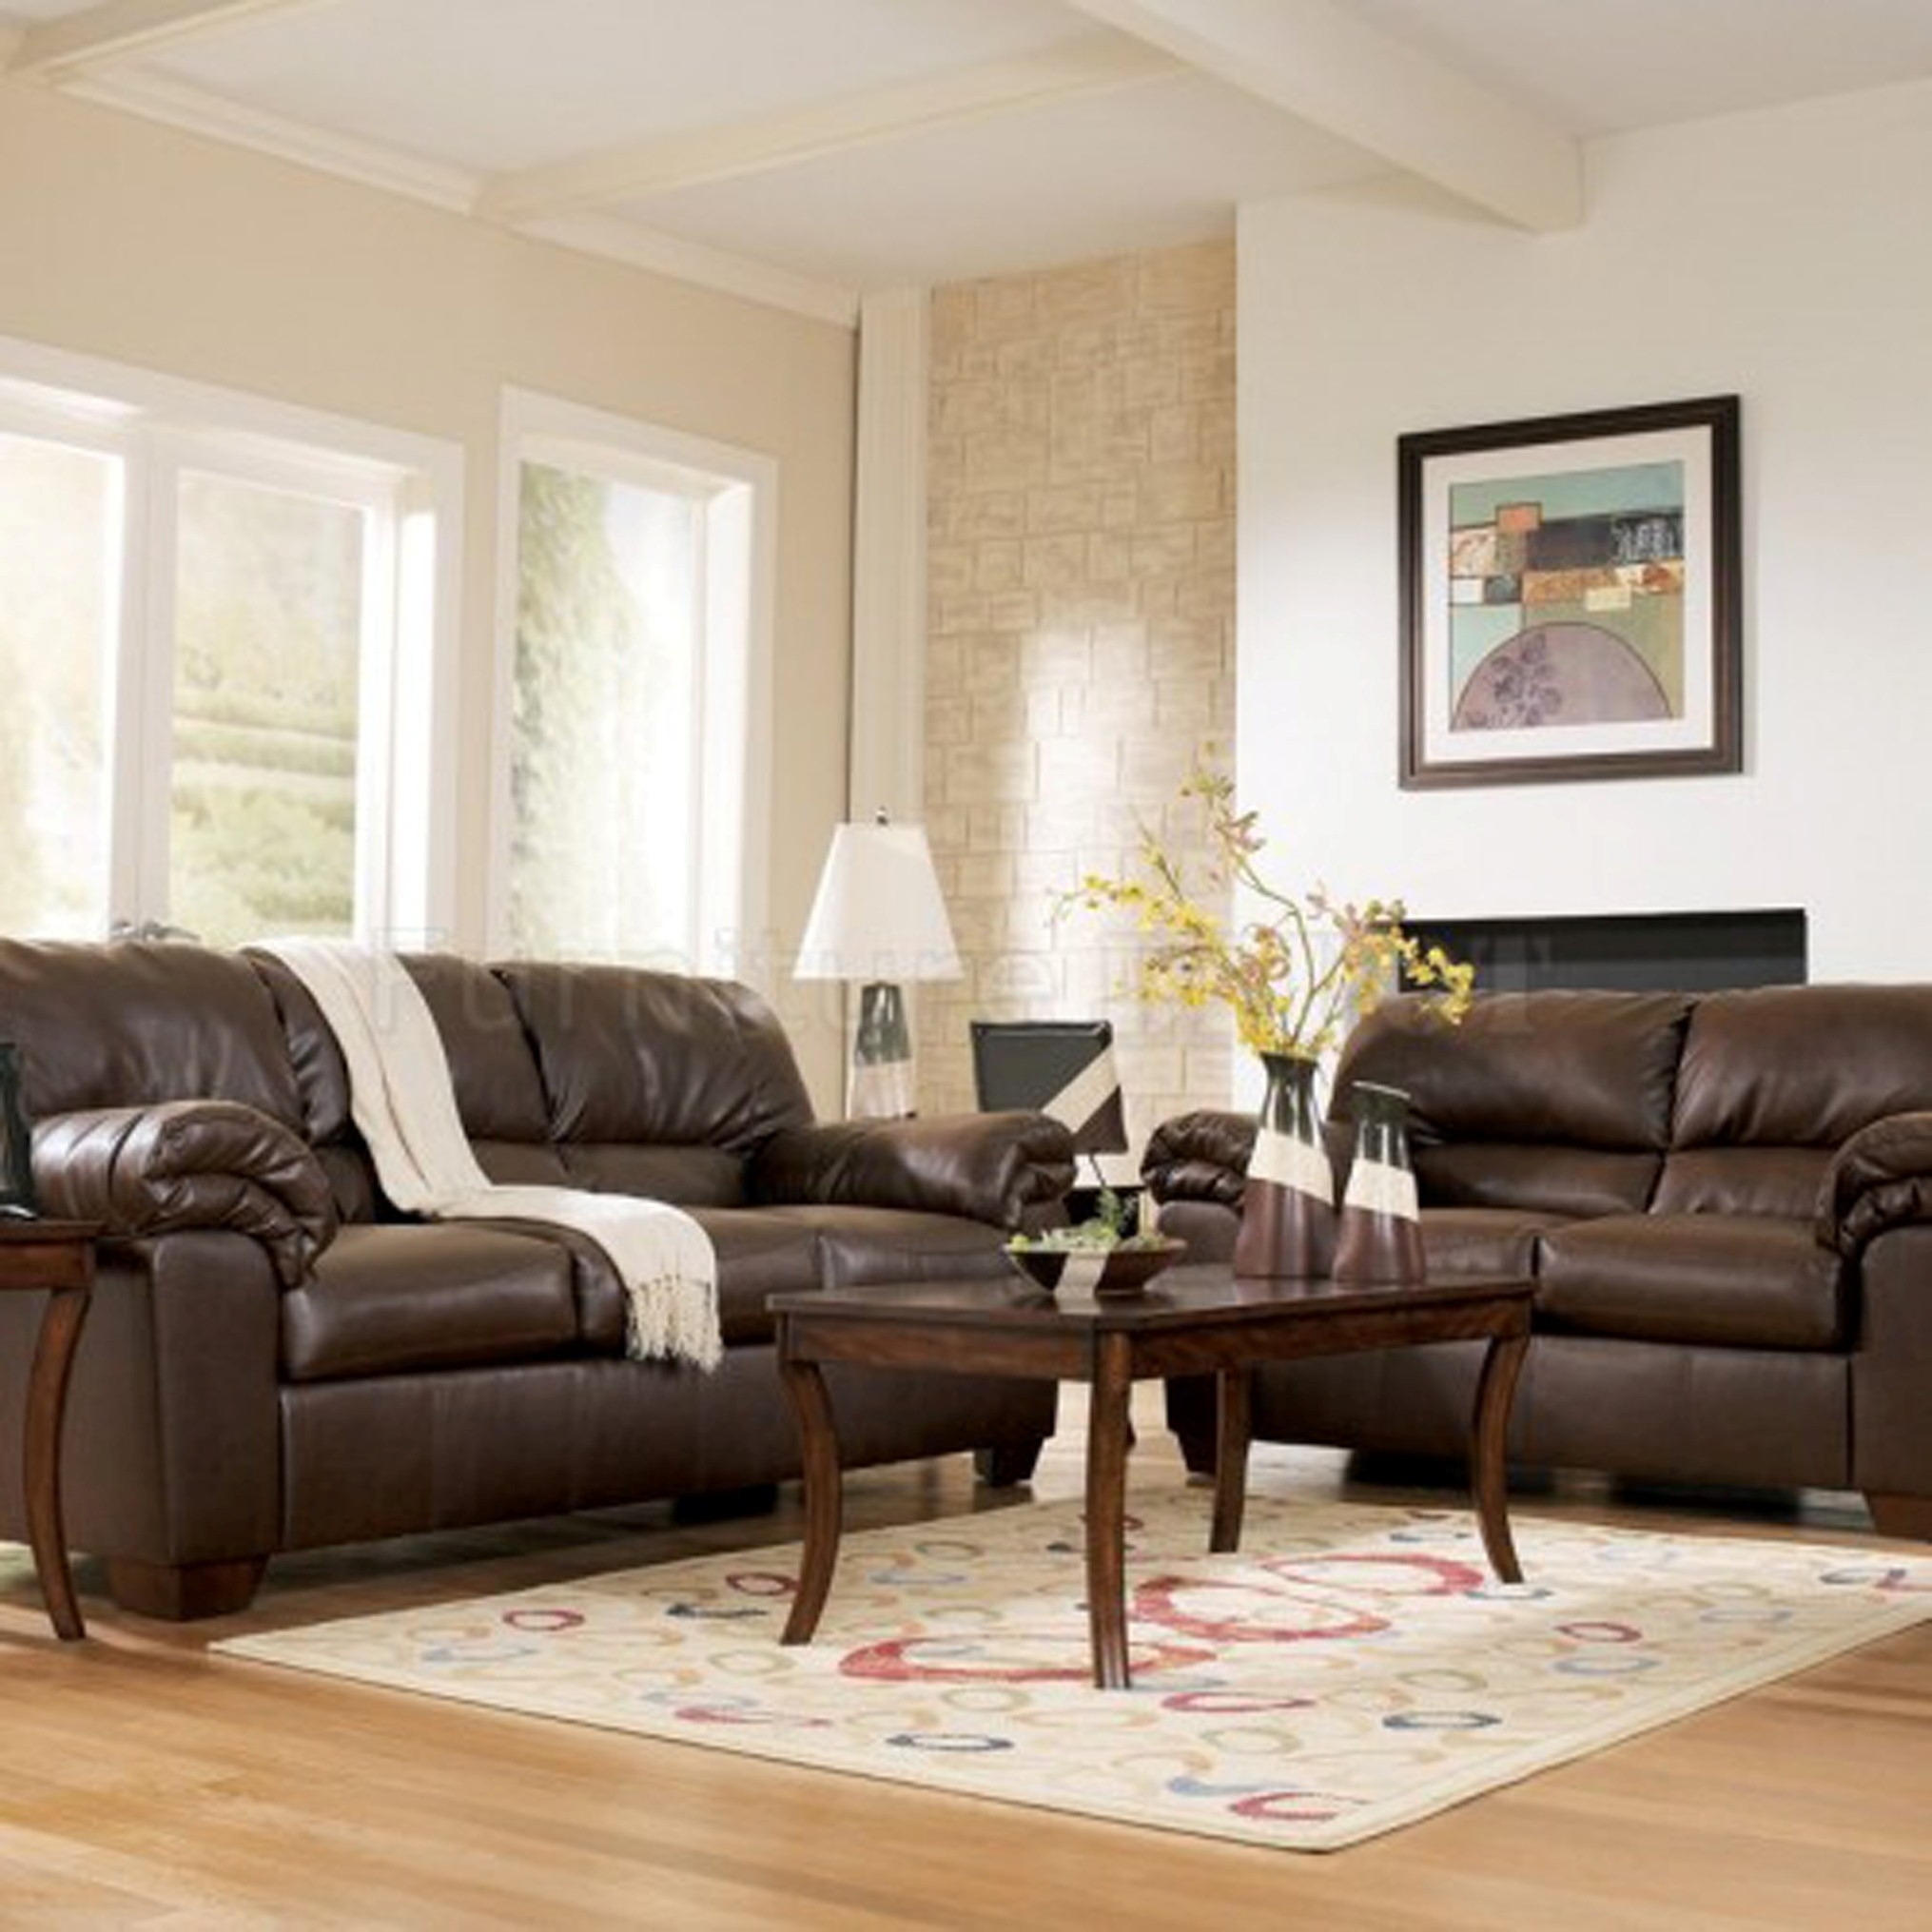 Brown Couches In Living Room Brown Leather Beige And White Living Room Best Site